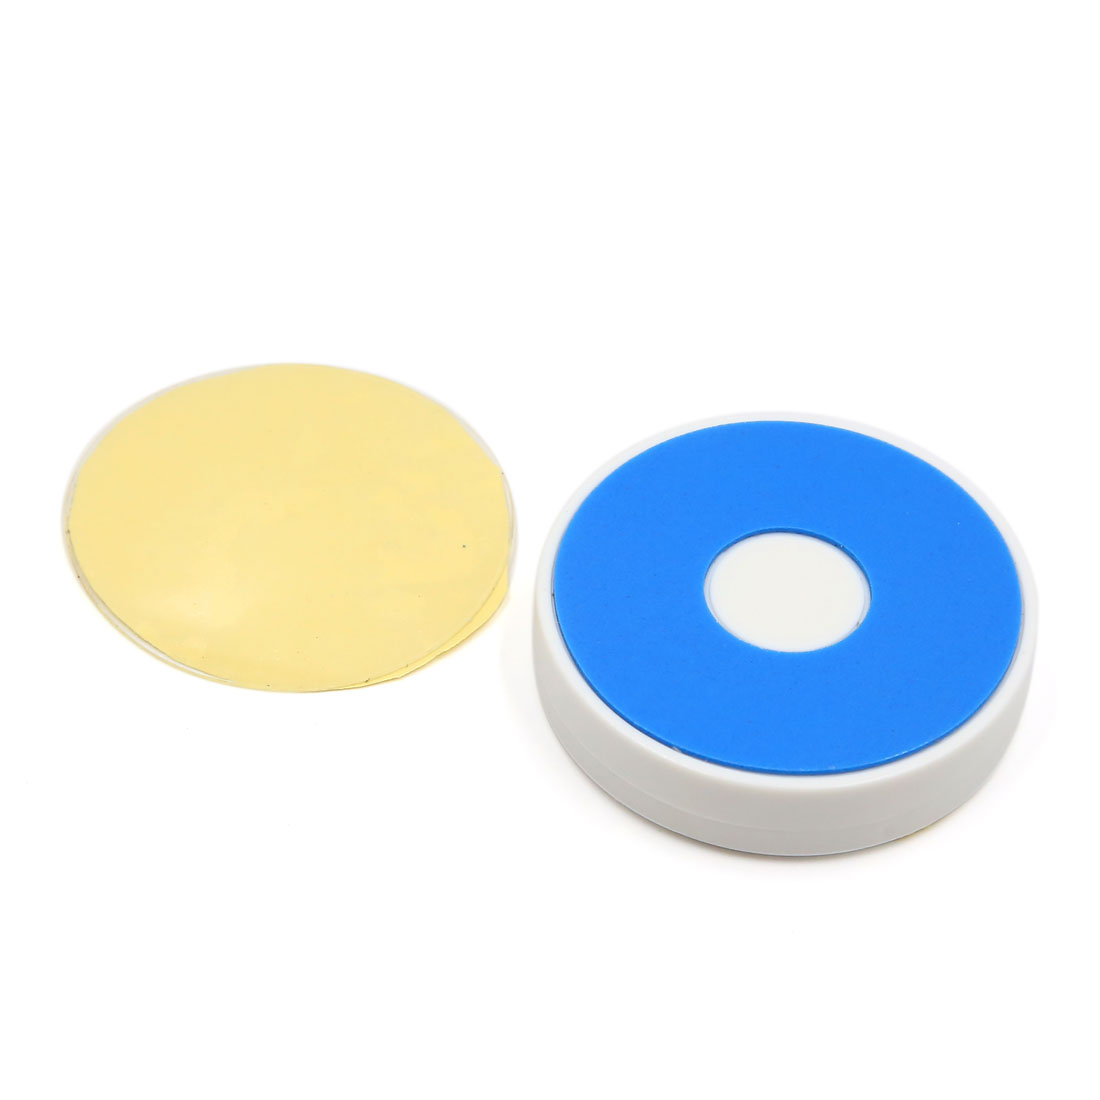 White Round Nano Adhesive Mounting Car Mobile Phone GPS Holder Stand Gold Tone